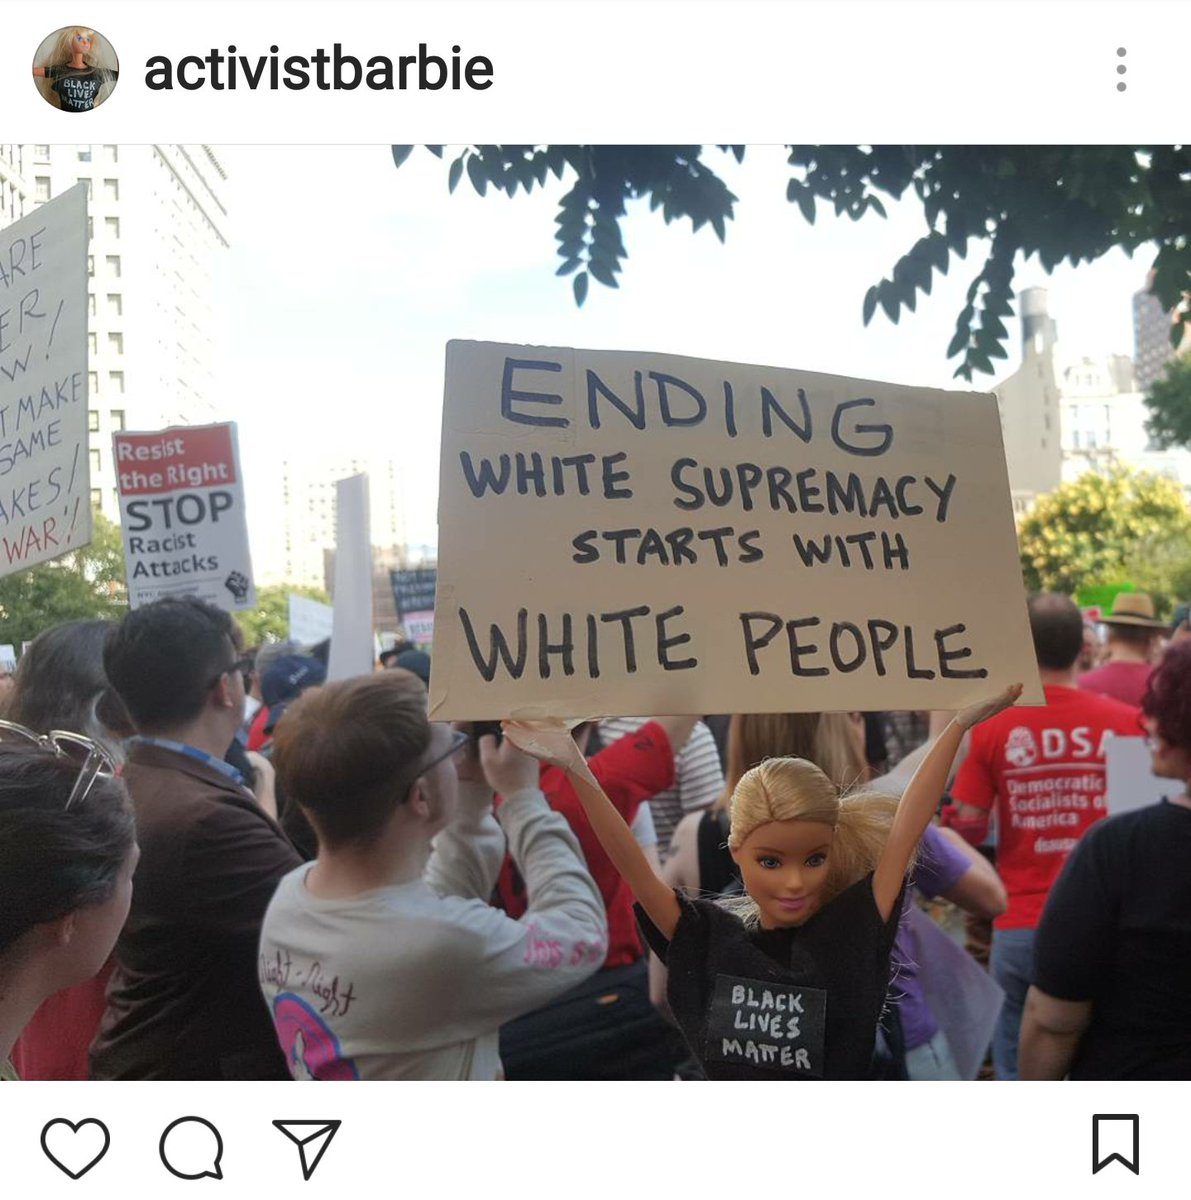 Ending white supremacy starts with white people. If you see racism, no matter how subtle or blatant, call it out. https://t.co/fATyCvBZoM